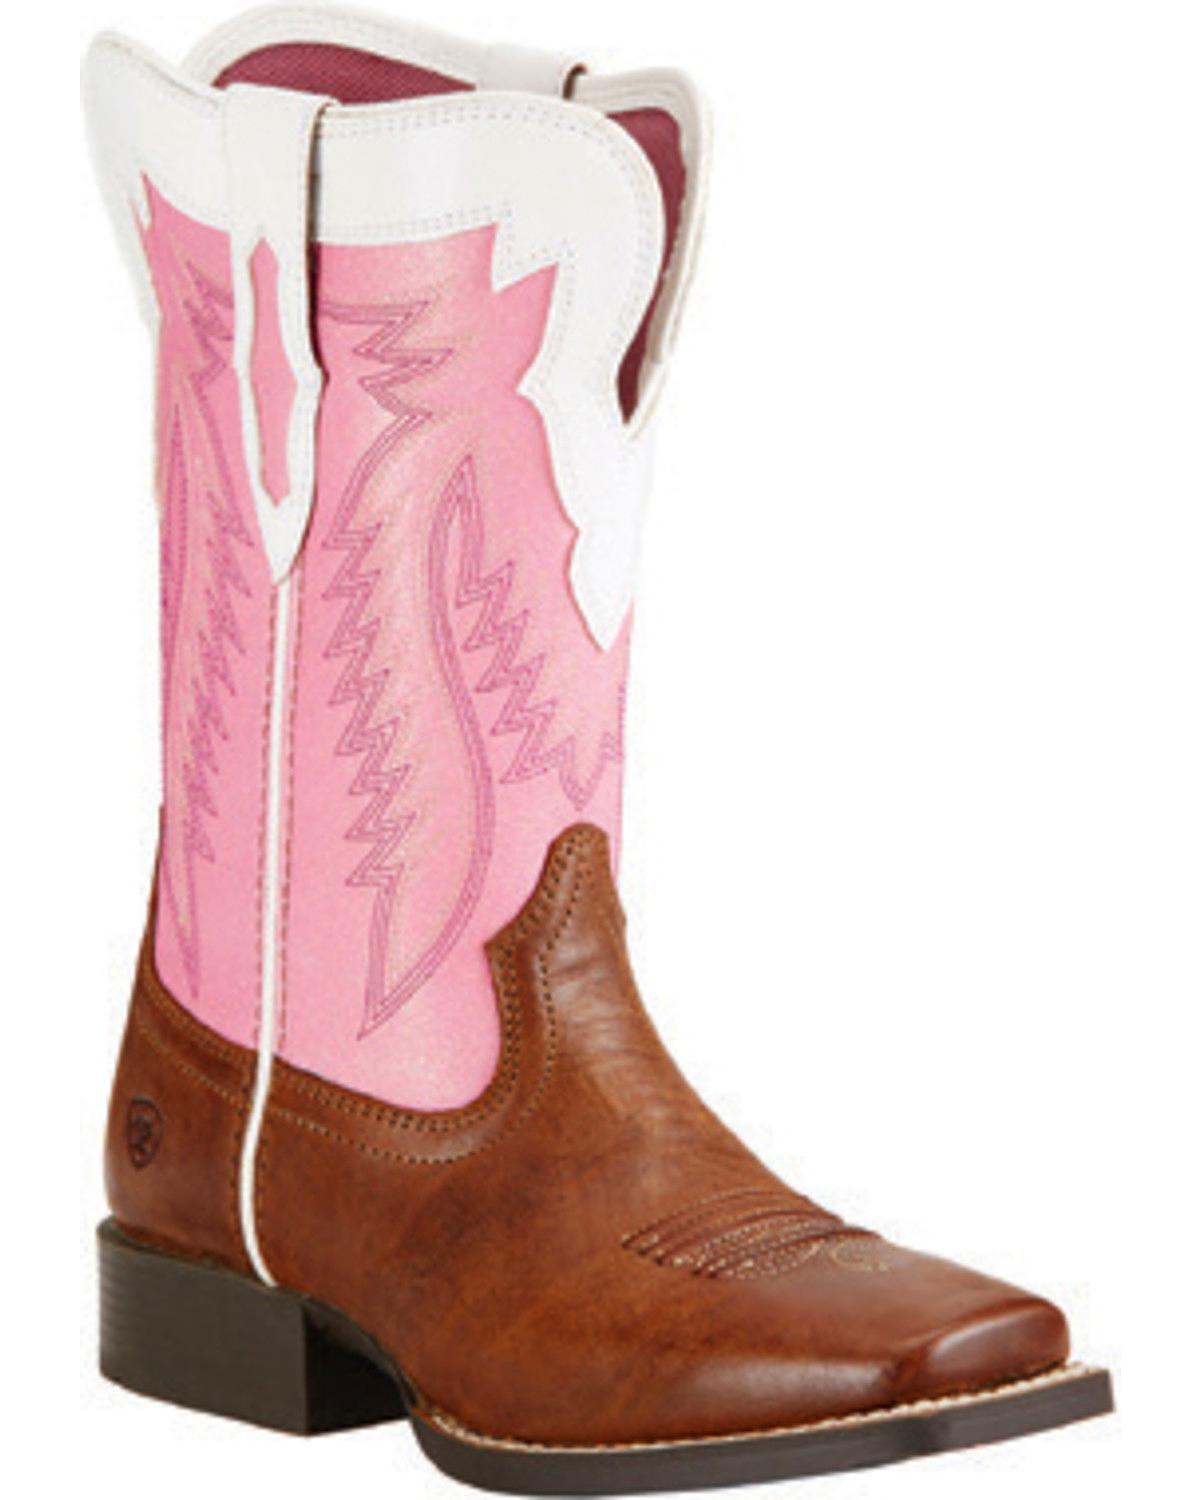 Ariat Girls' Buscadero Cowgirl Boot Square Toe 10018618C by Ariat